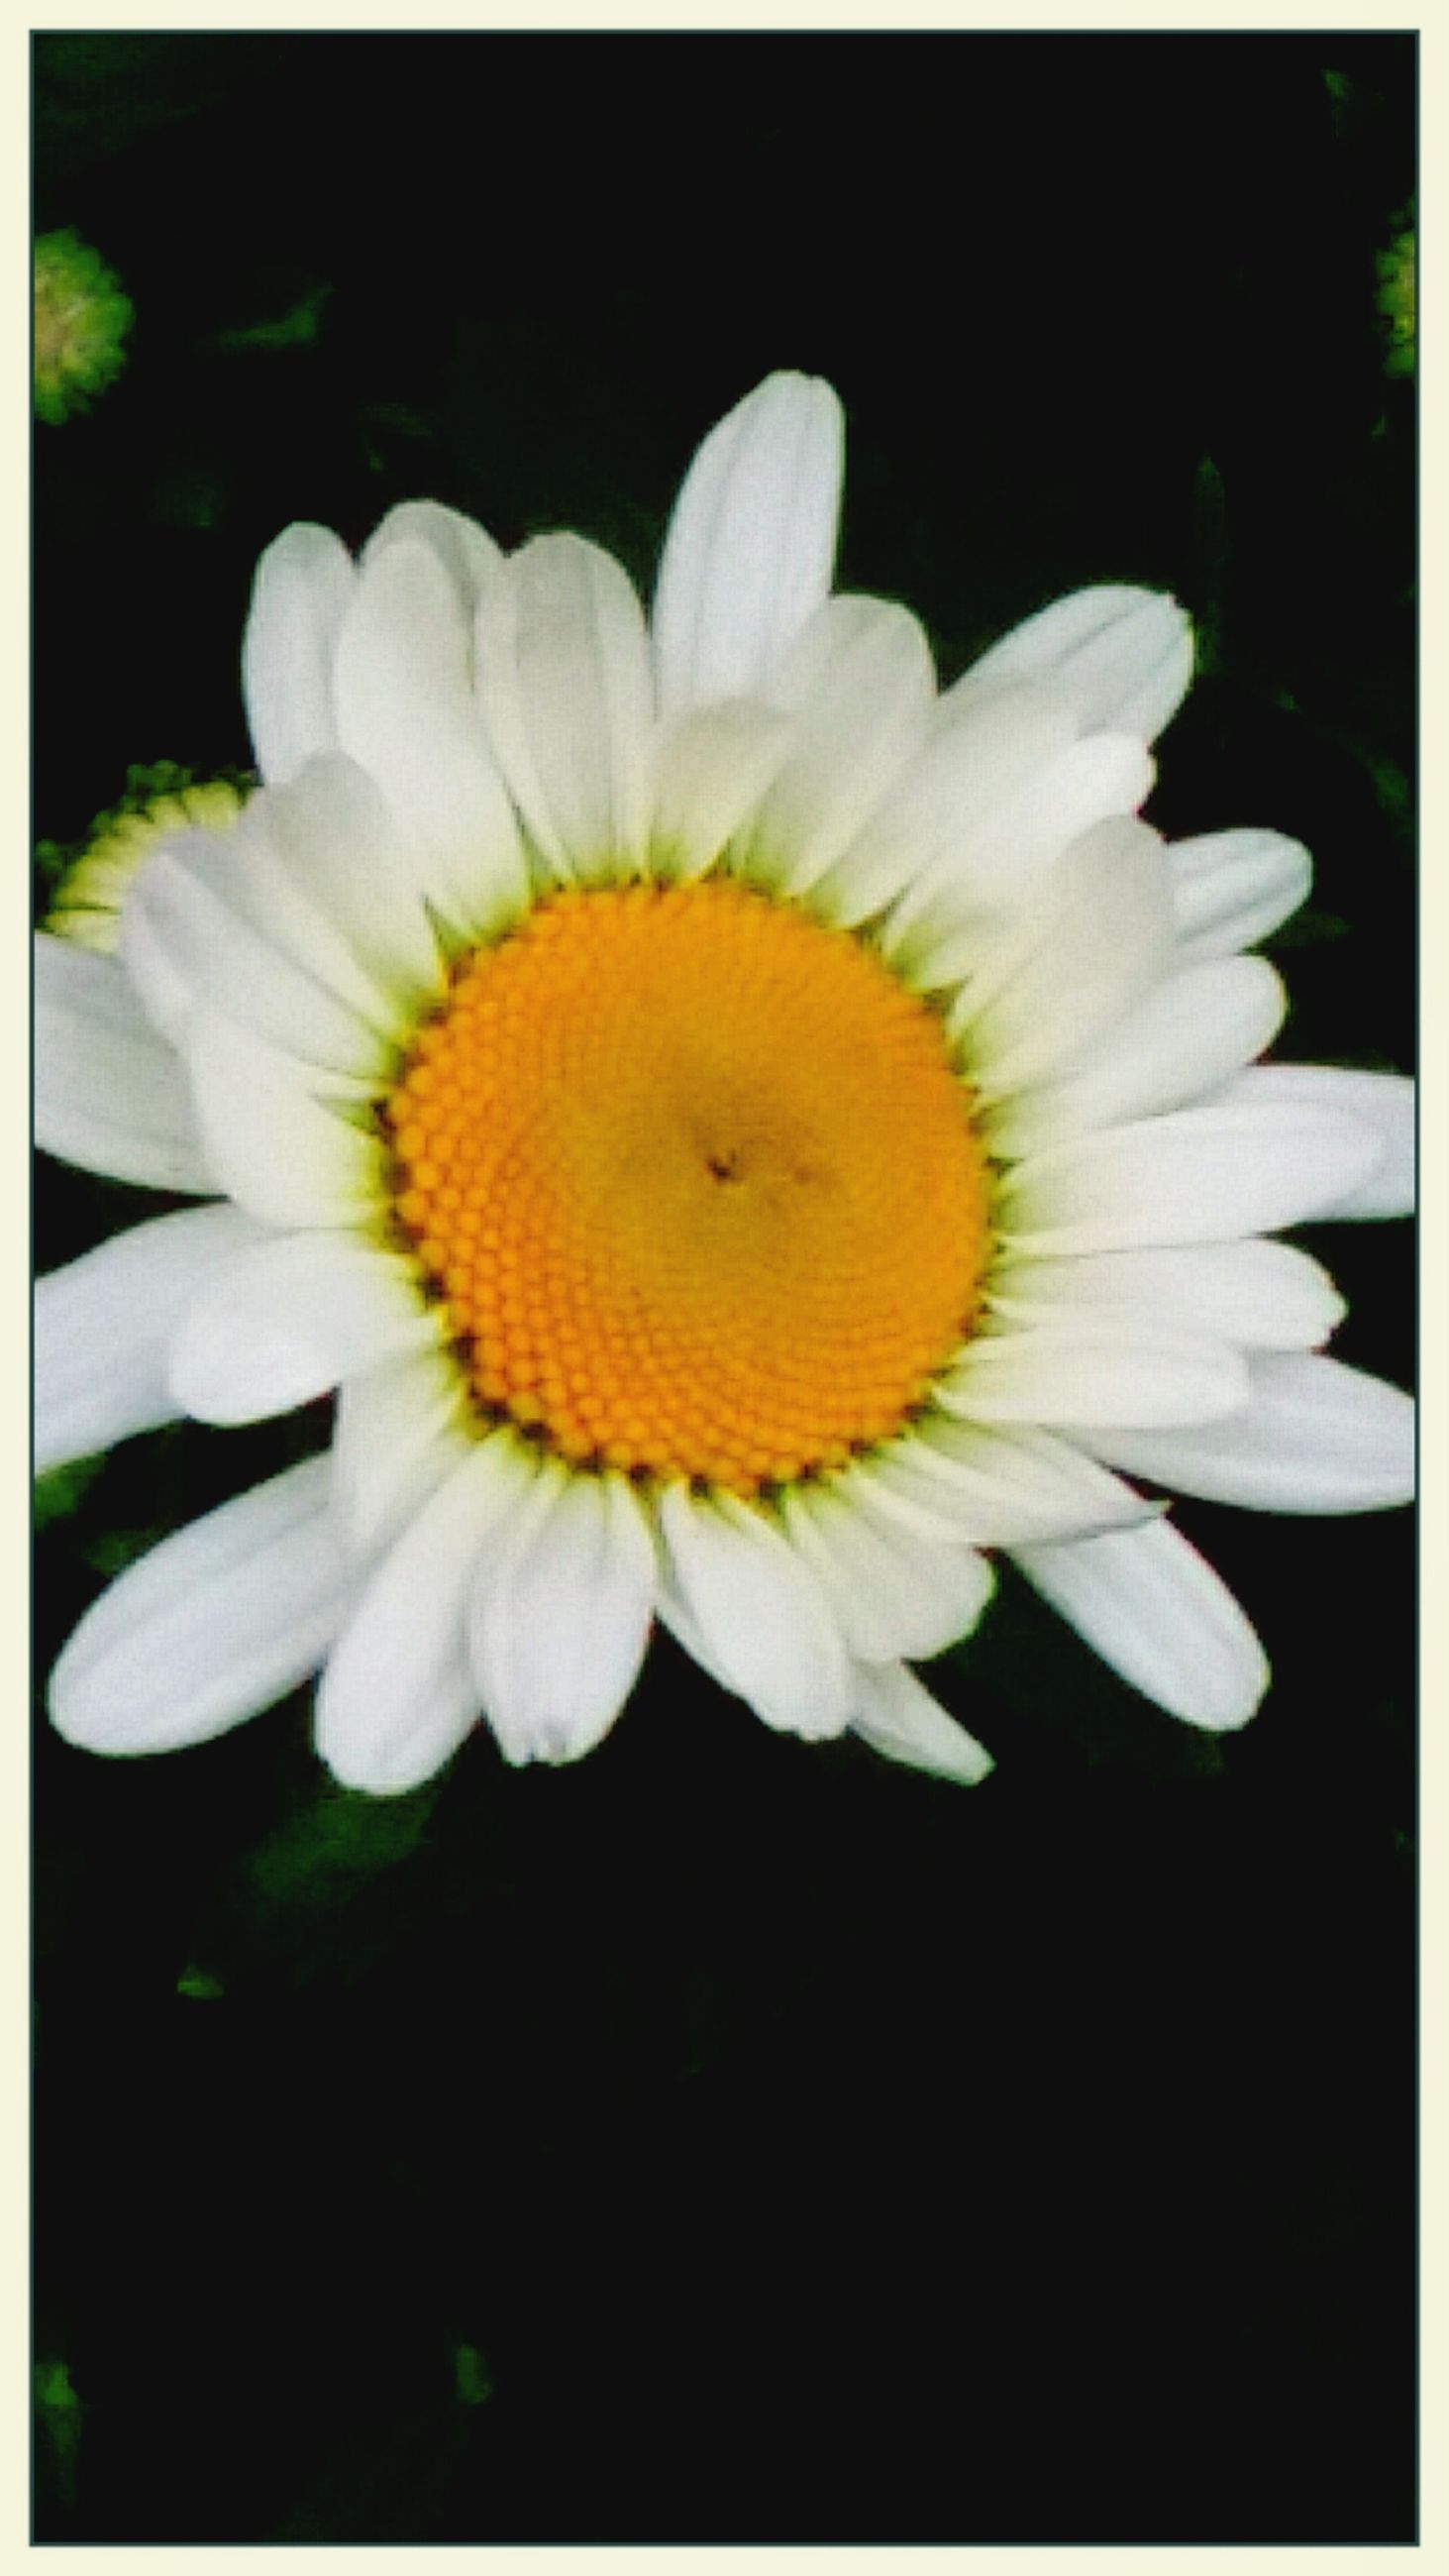 flower, petal, freshness, flower head, fragility, growth, single flower, yellow, beauty in nature, close-up, pollen, transfer print, white color, nature, blooming, daisy, auto post production filter, stamen, in bloom, plant